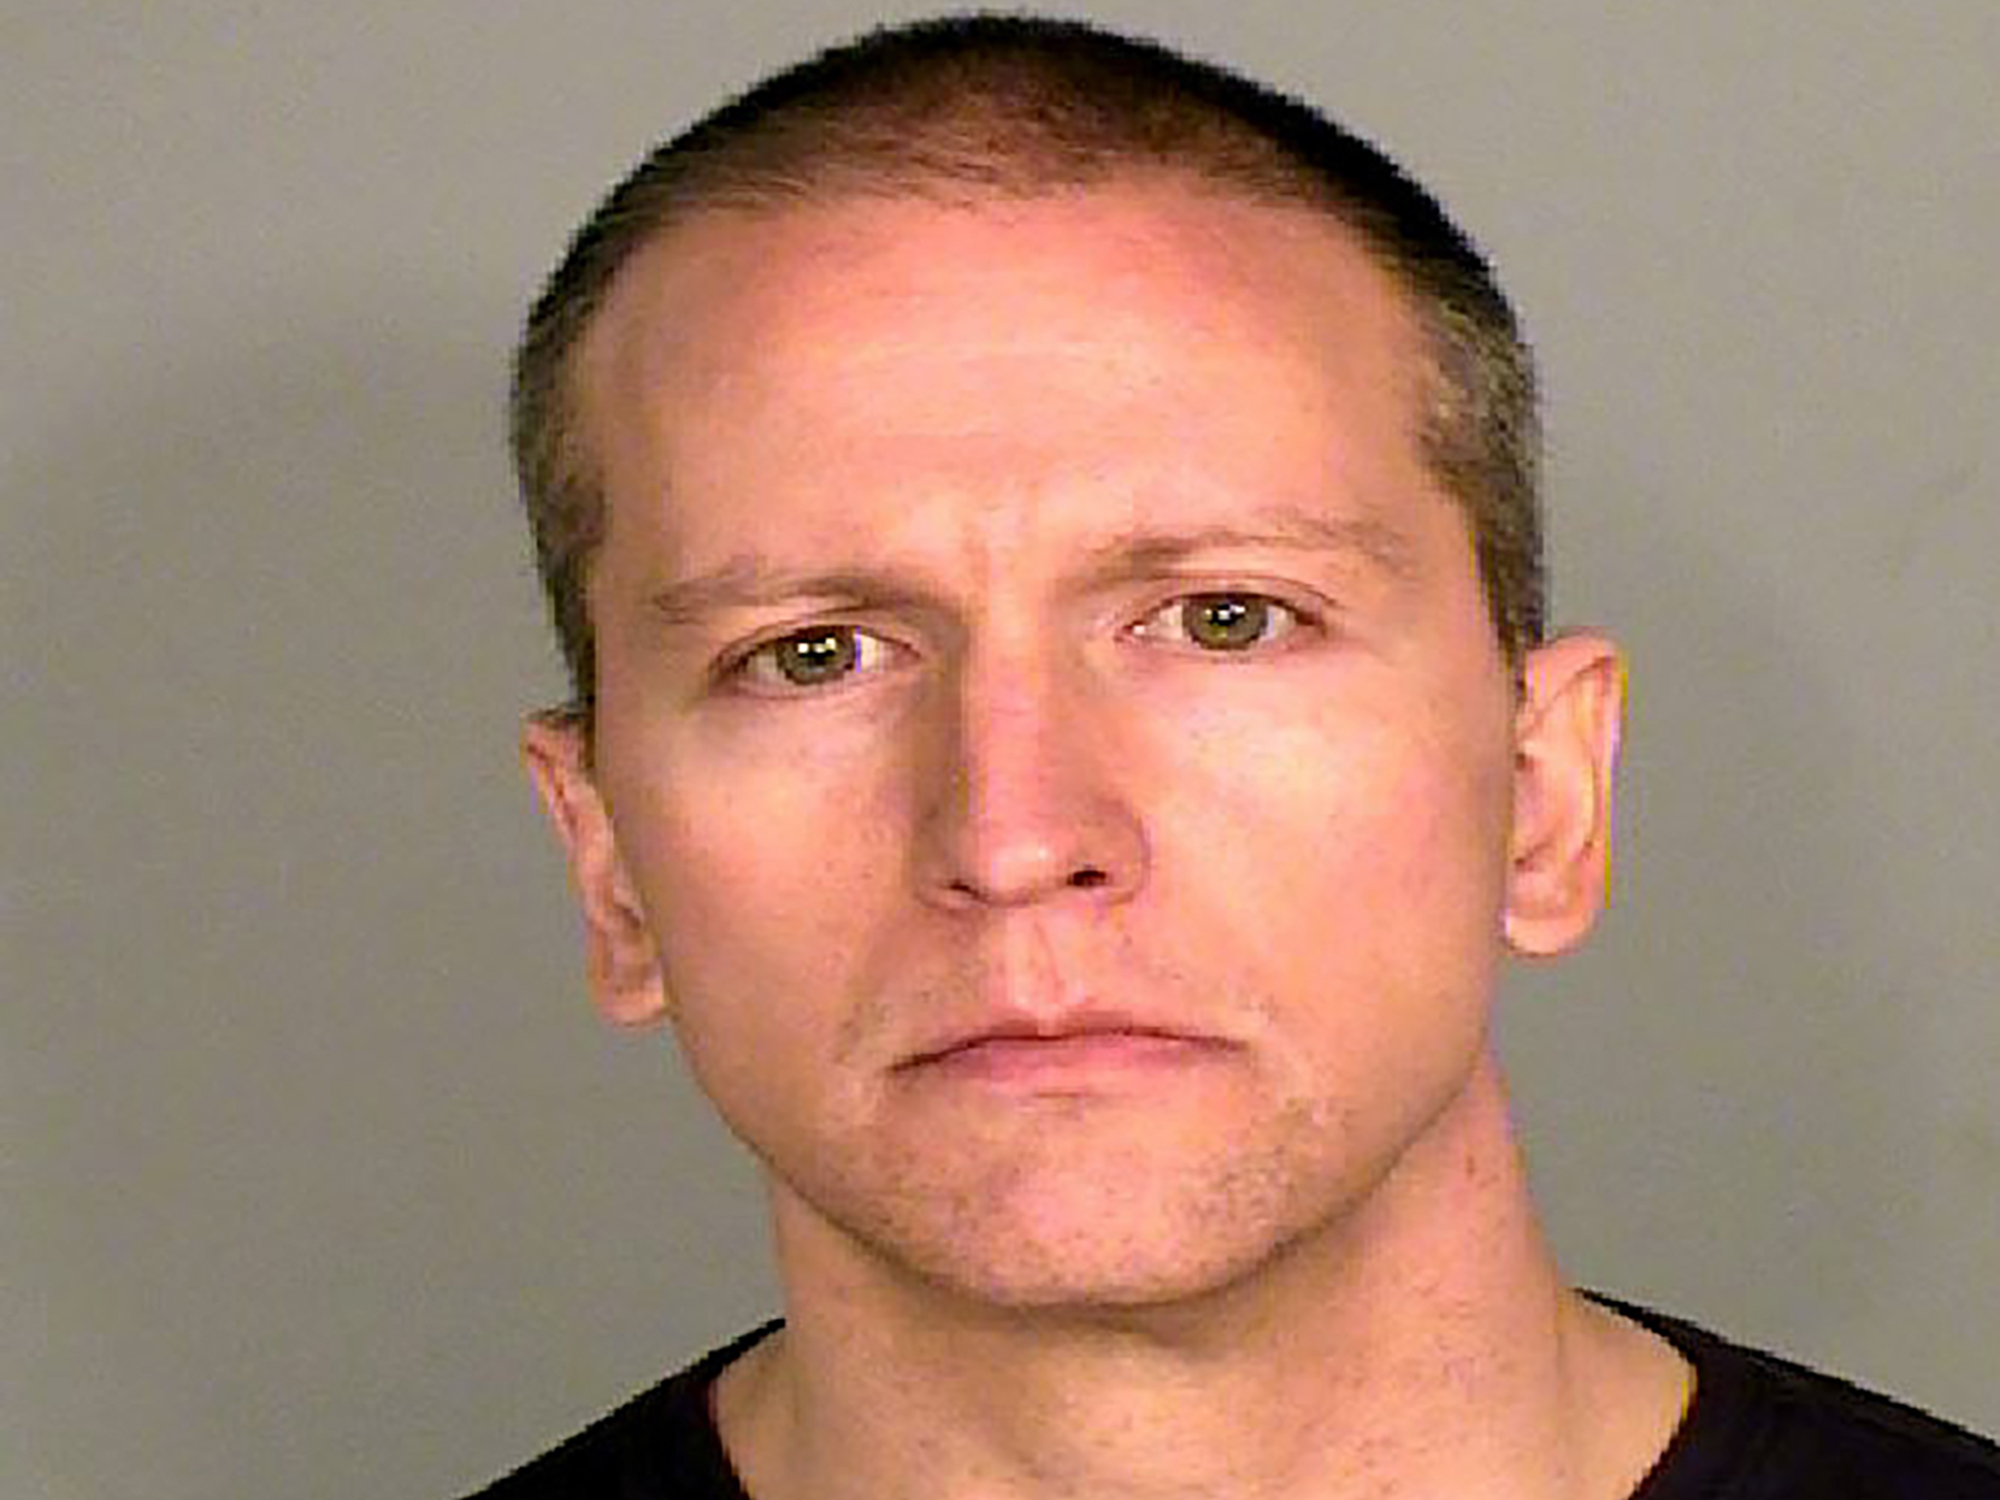 George Floyd: Murder charge dropped against former officer Derek Chauvin